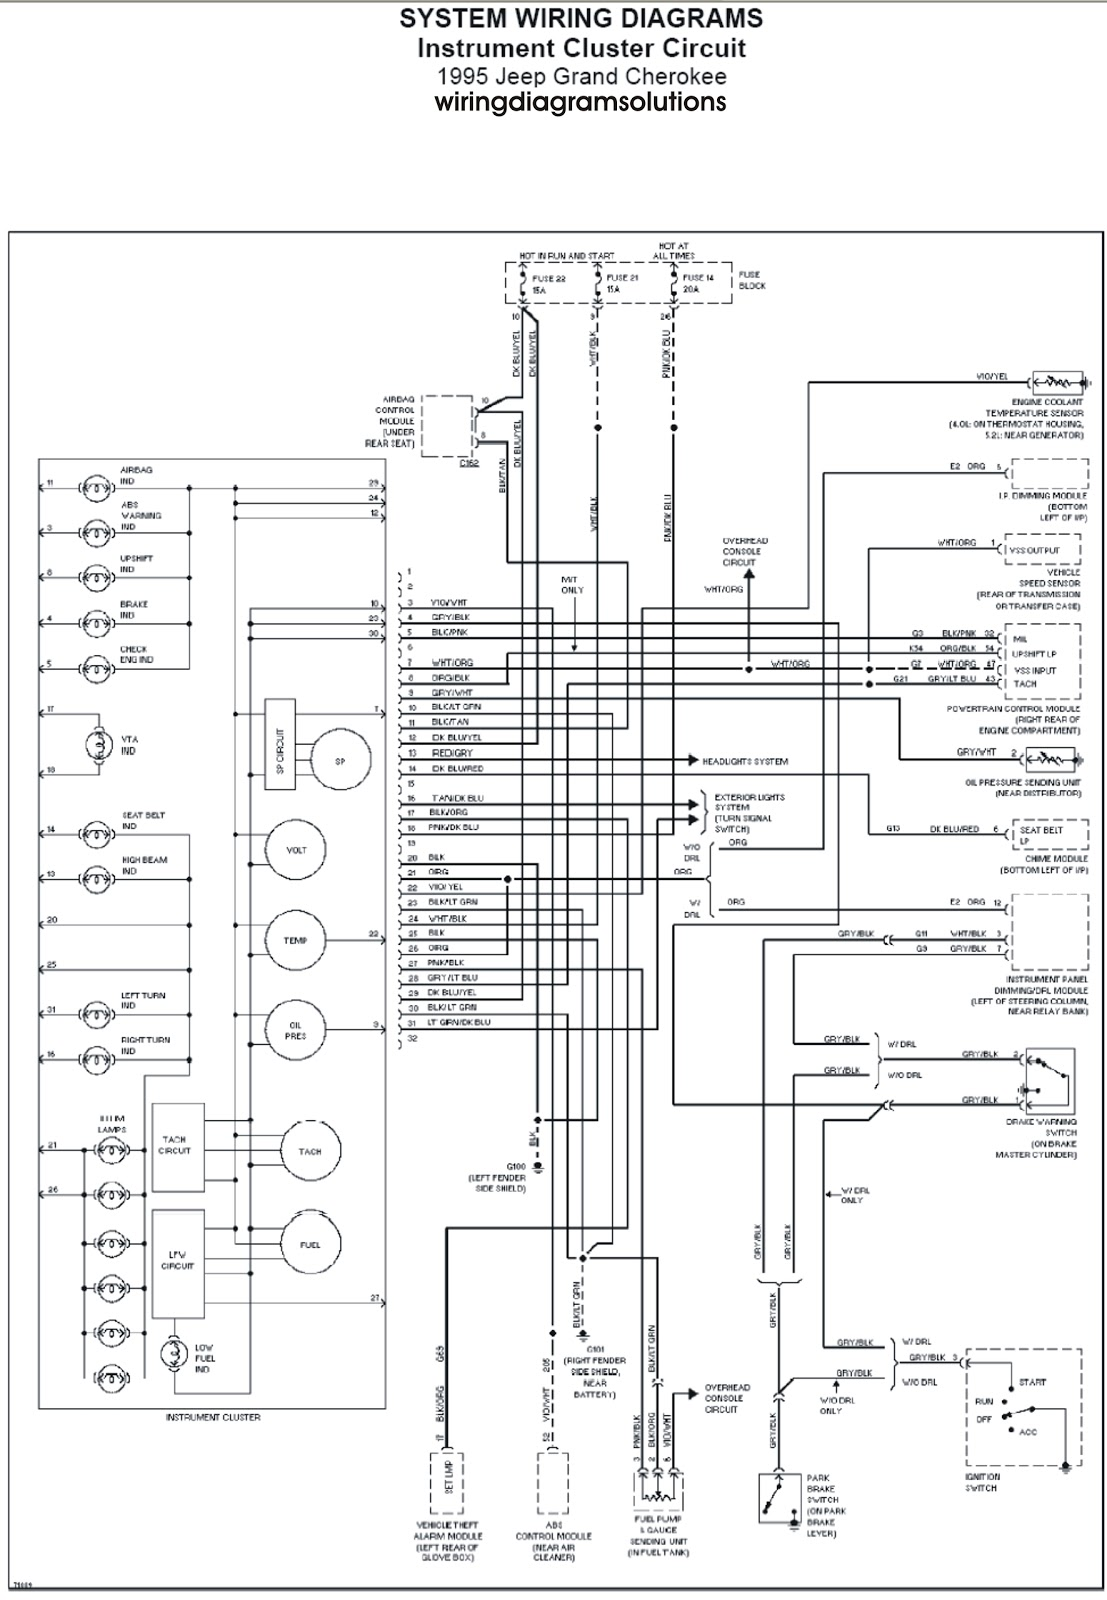 1998 Jeep 4 0 Wiring Schematic Simple Wiring Diagram 2006 Dodge Charger  Wiring Harness Diagram 2004 Jeep Grand Cherokee Wiring Harness Diagram